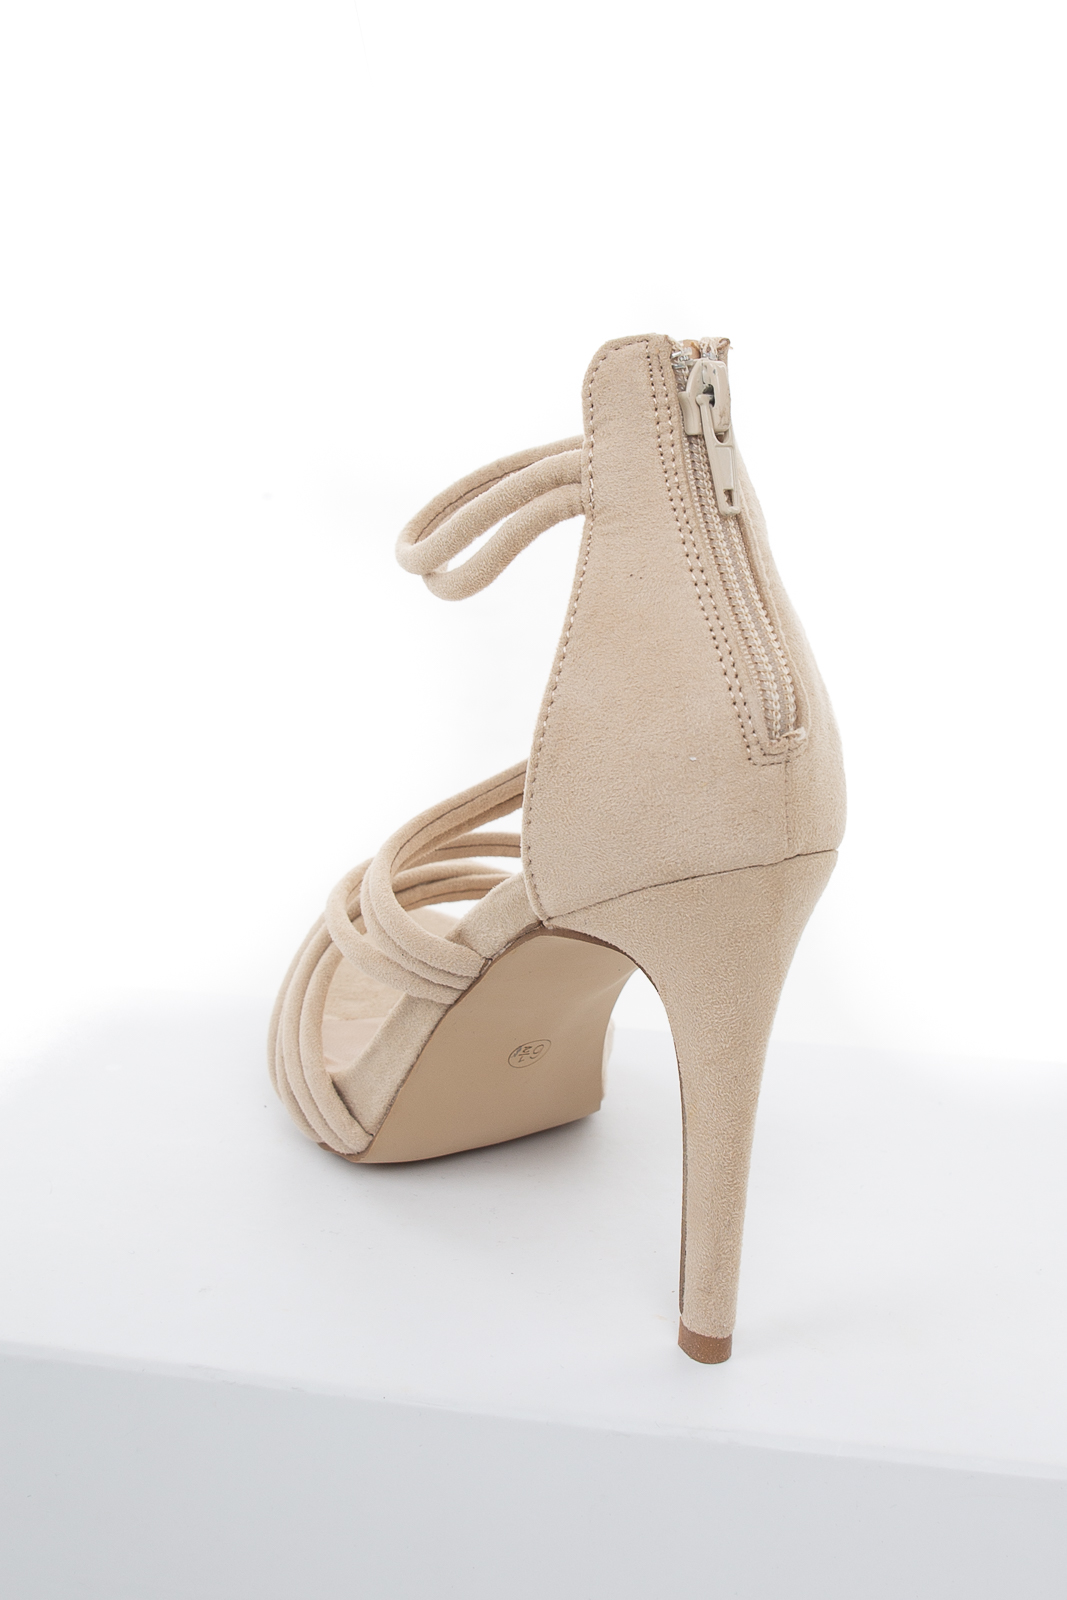 Latte Faux Suede Strappy High Heel with Zipper Closure